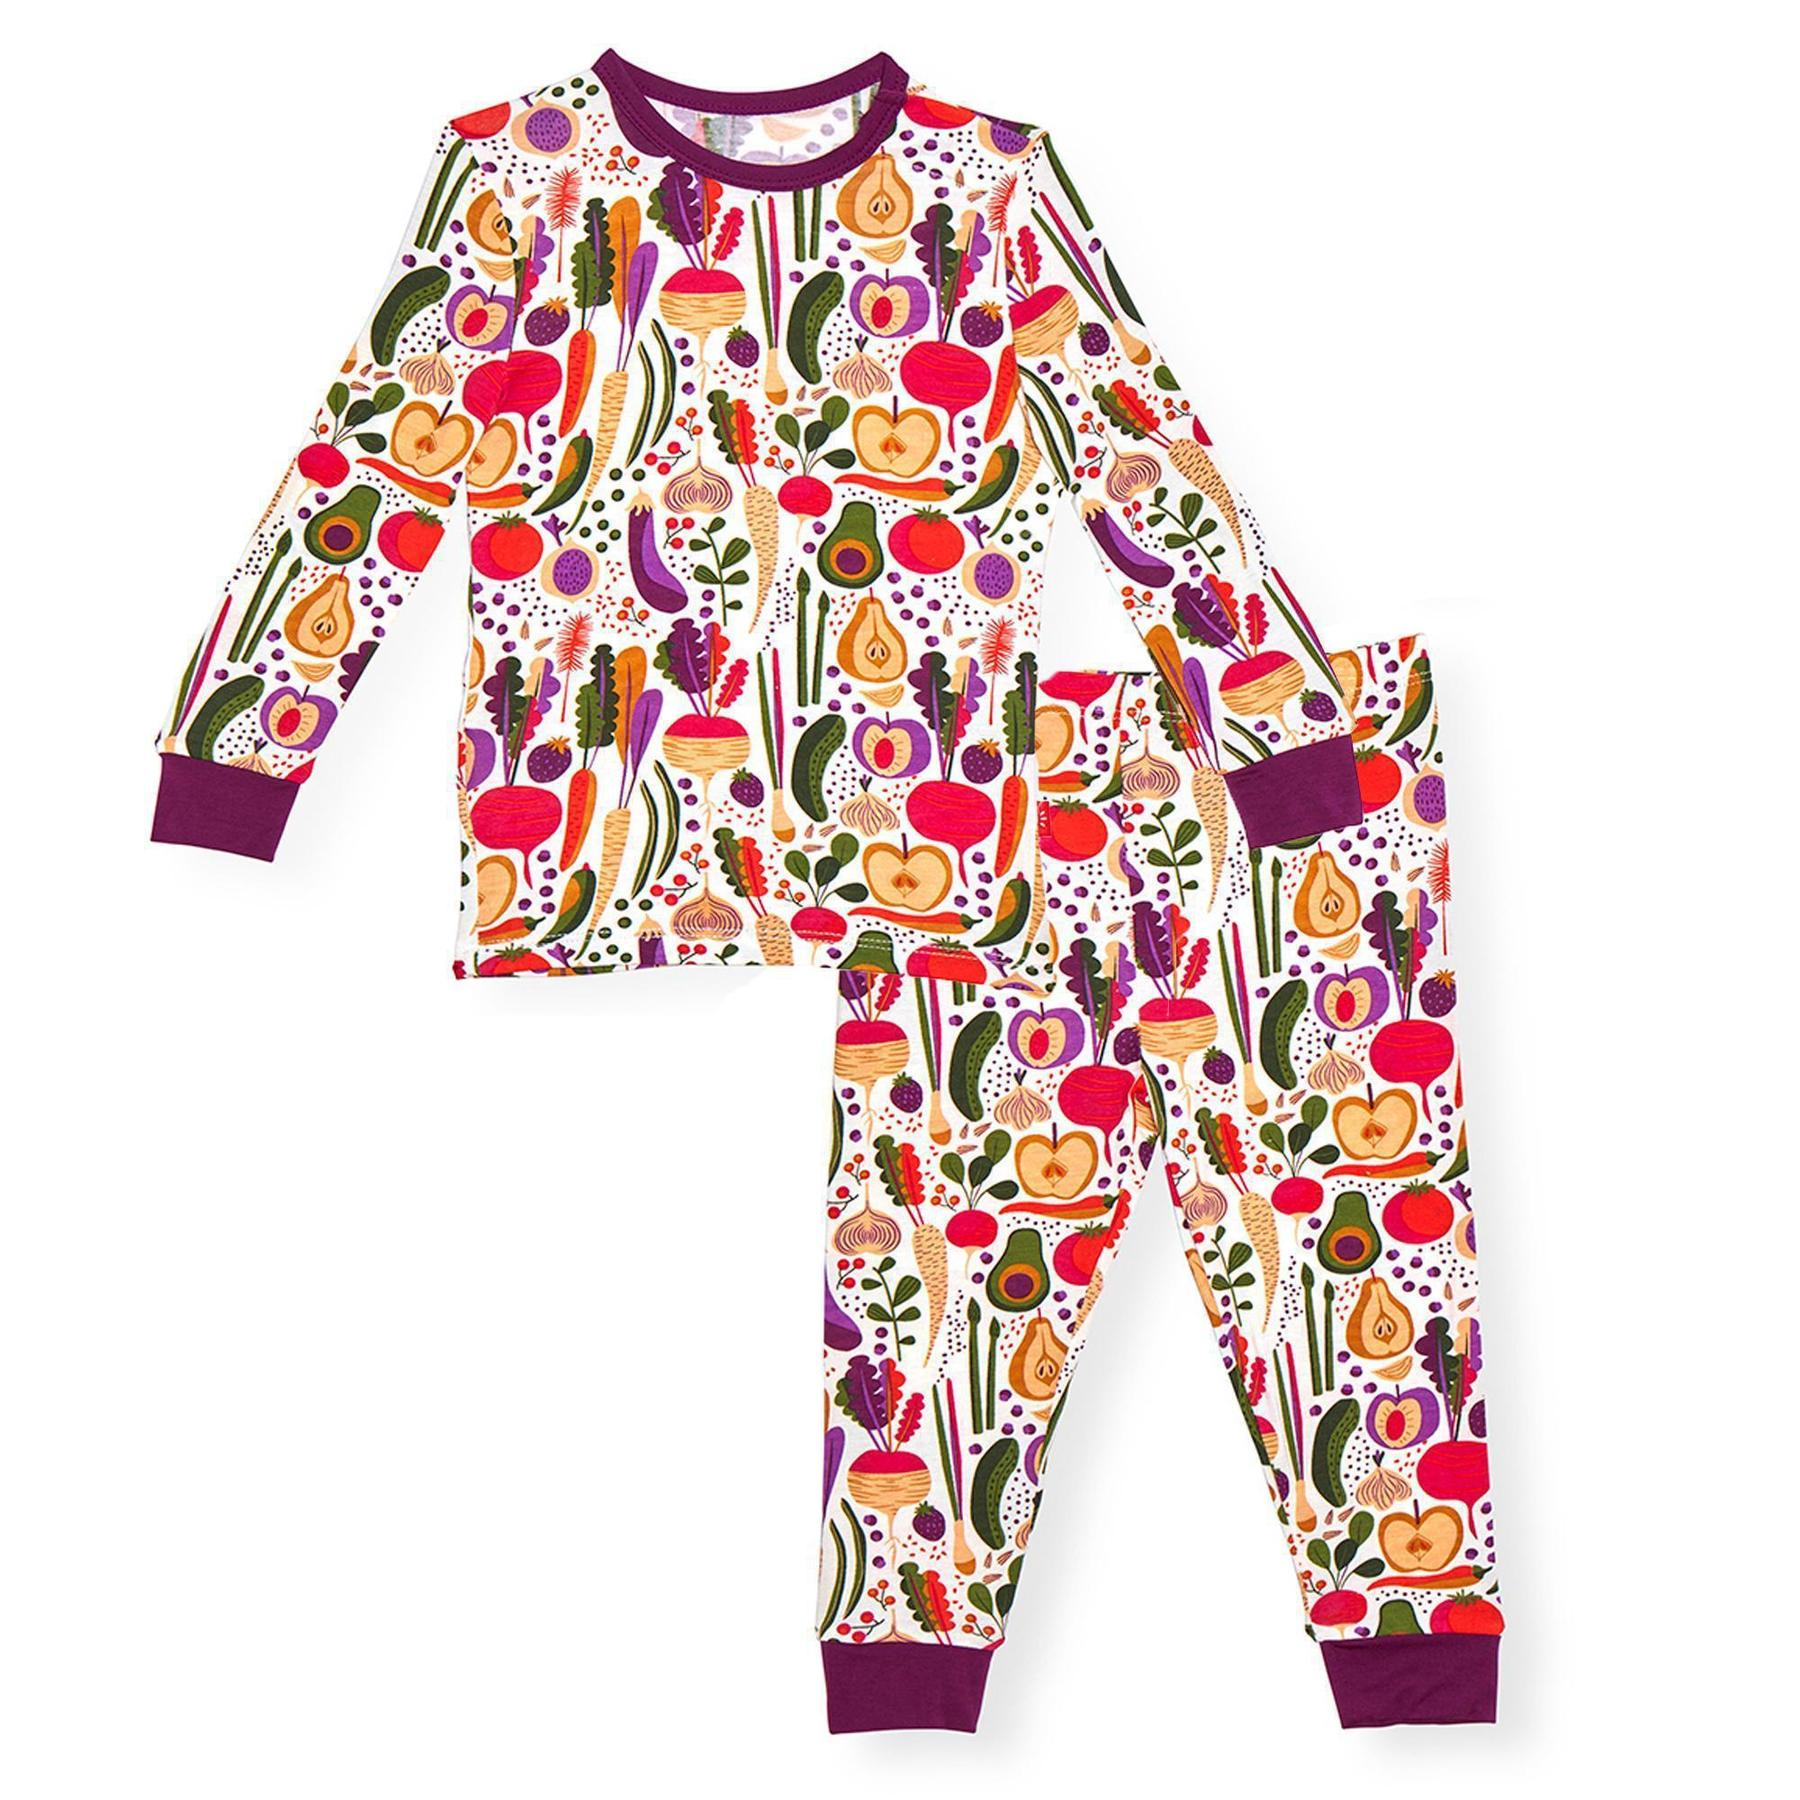 Magnificent Baby - Home Grown 2 Piece Toddler Pajama Set